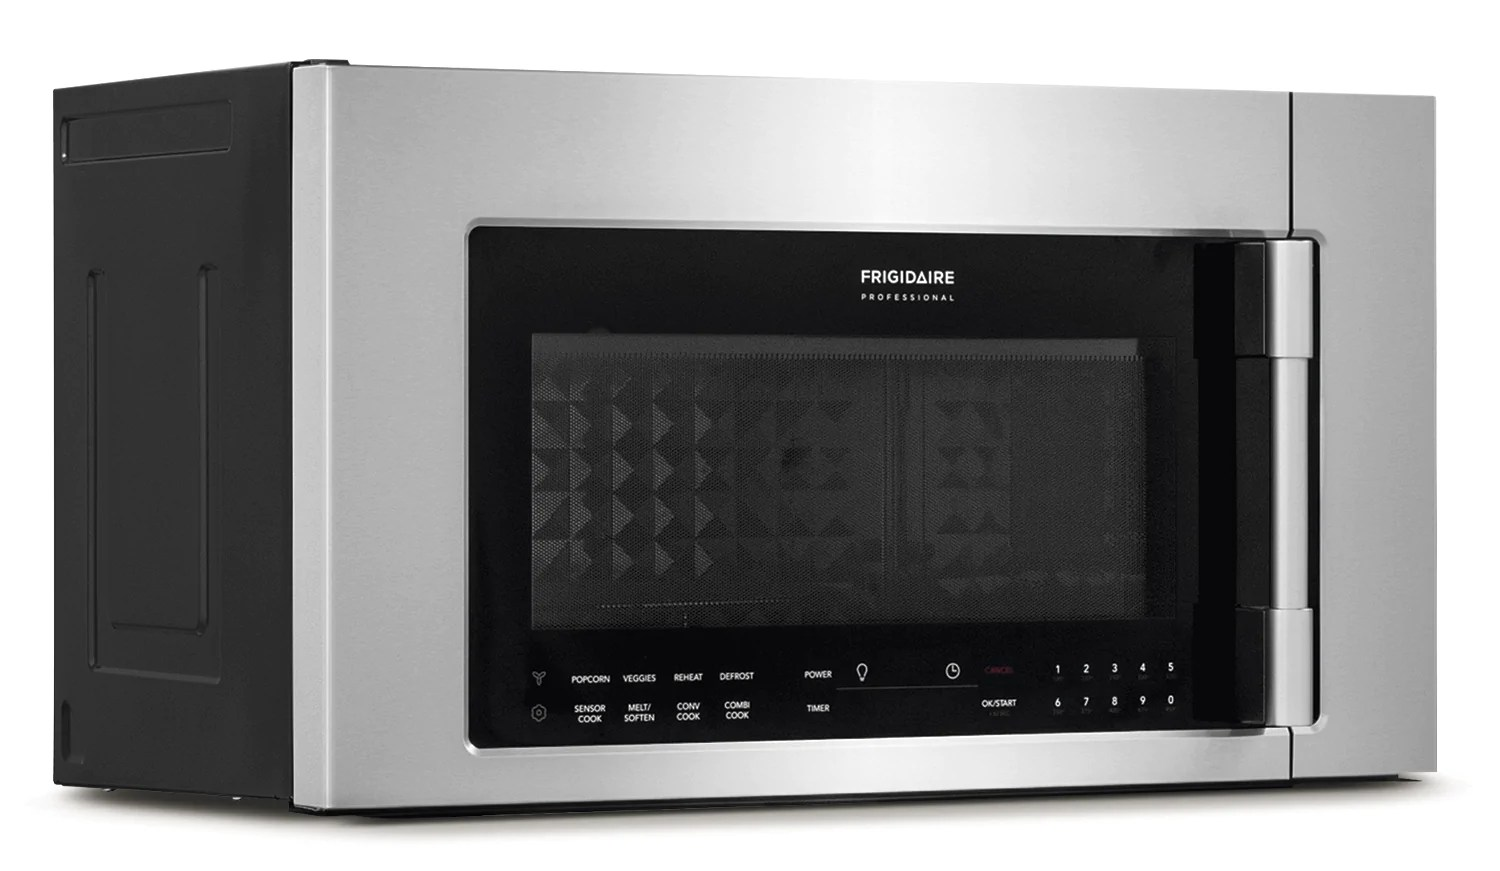 frigidaire professional stainless steel over the range microwave 1 8 cu ft cpbm3077rf